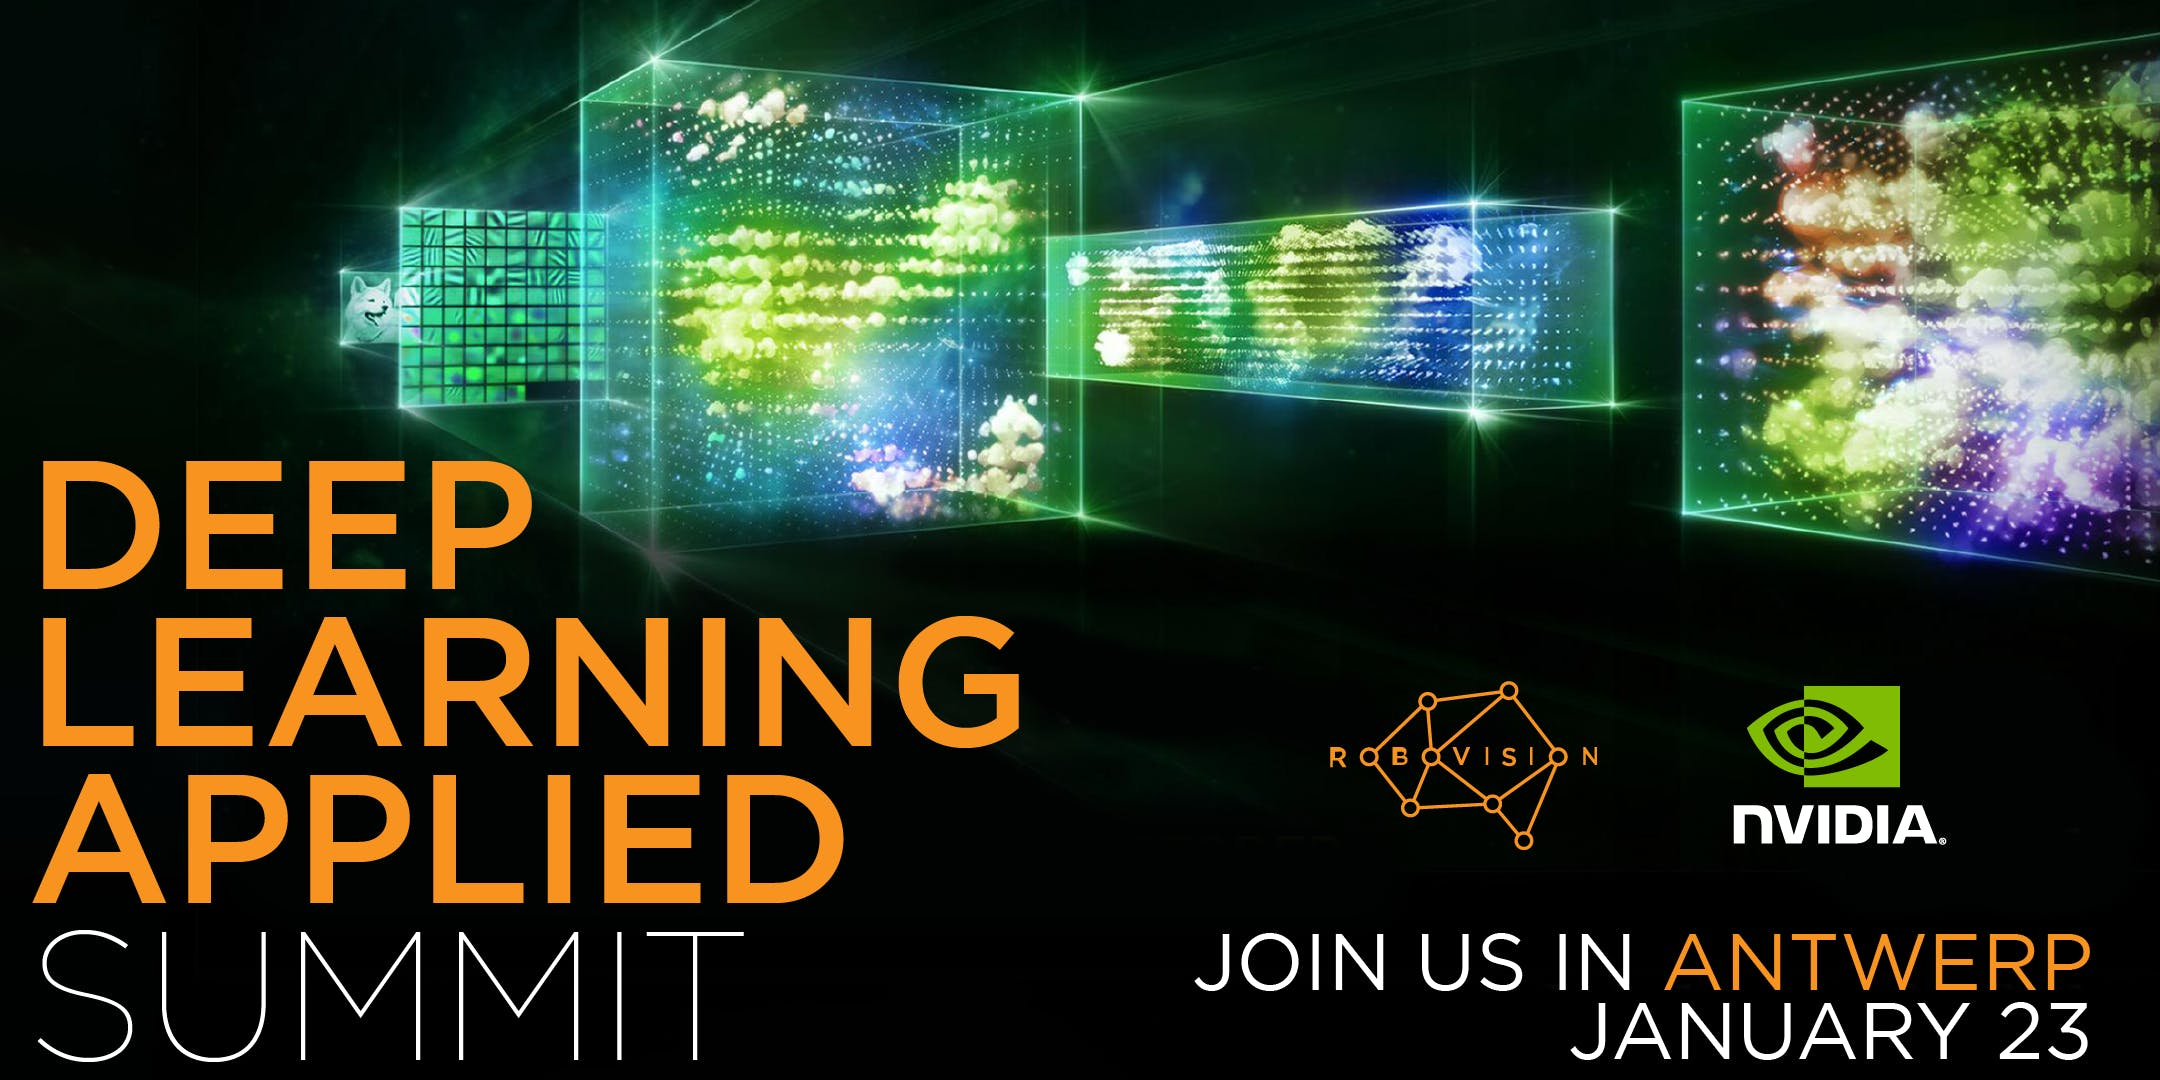 Deep Learning Applied Summit